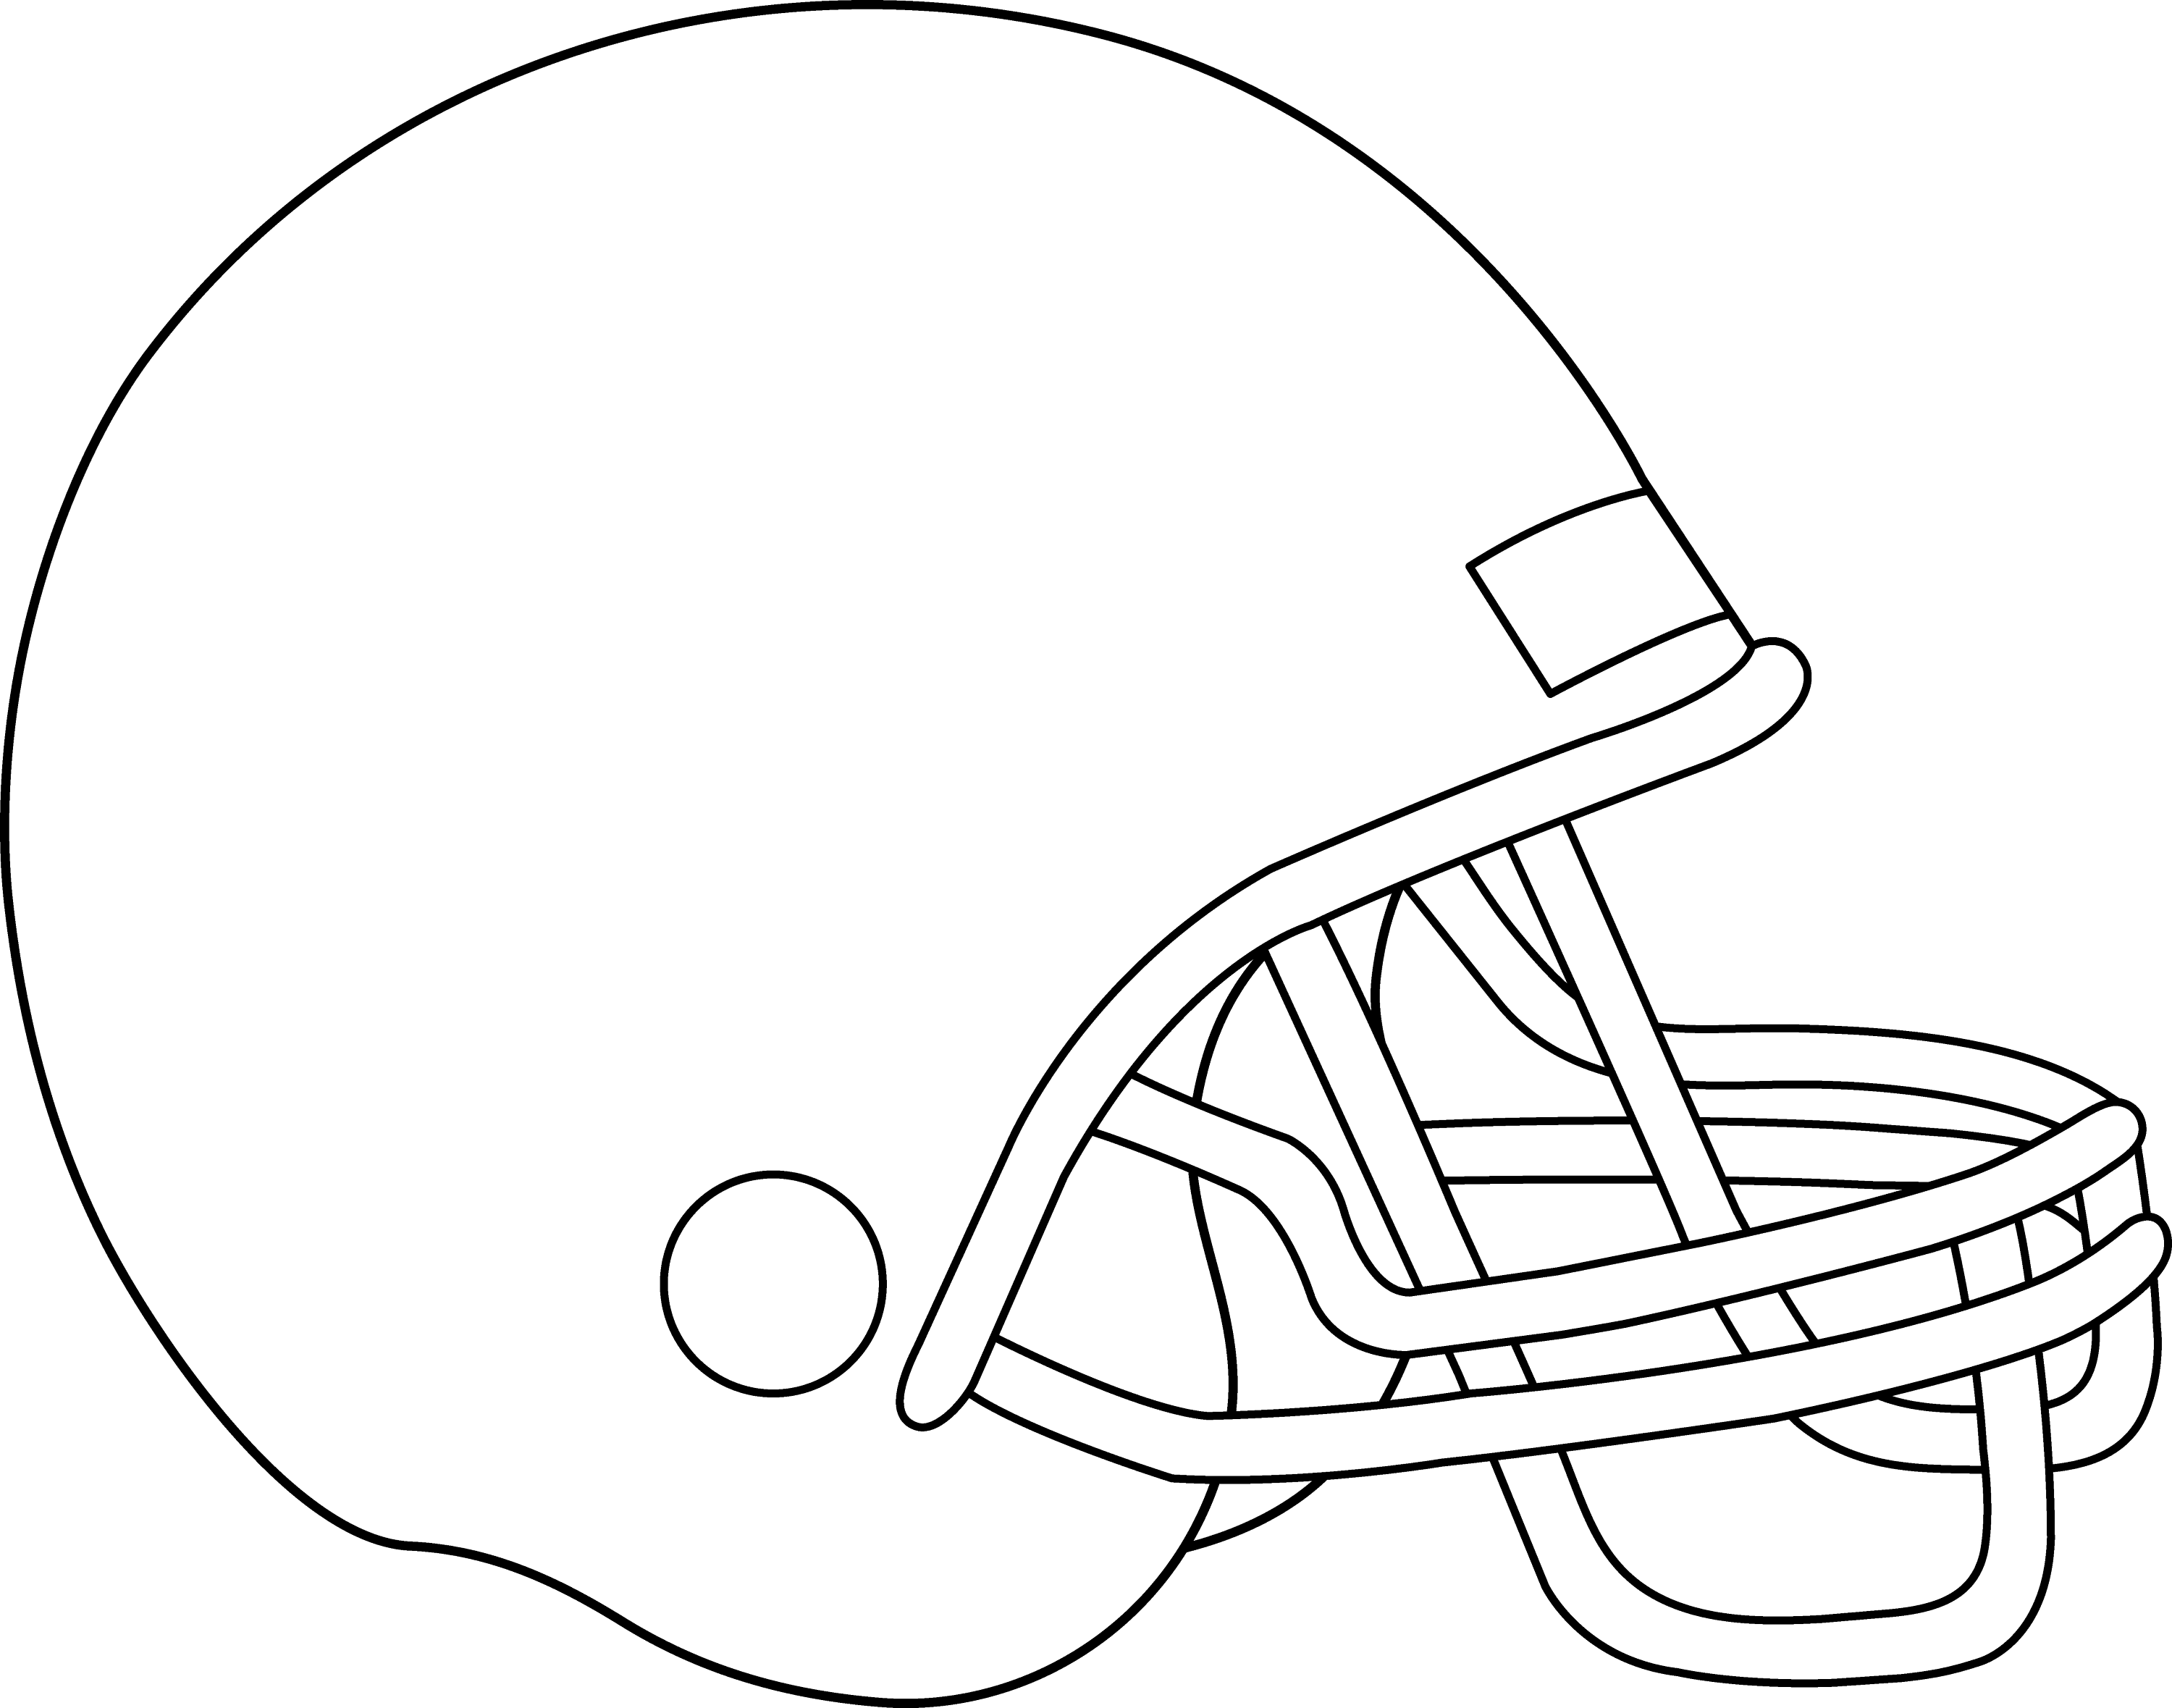 Blank Football Helmet For Coloring - Free Clip Art